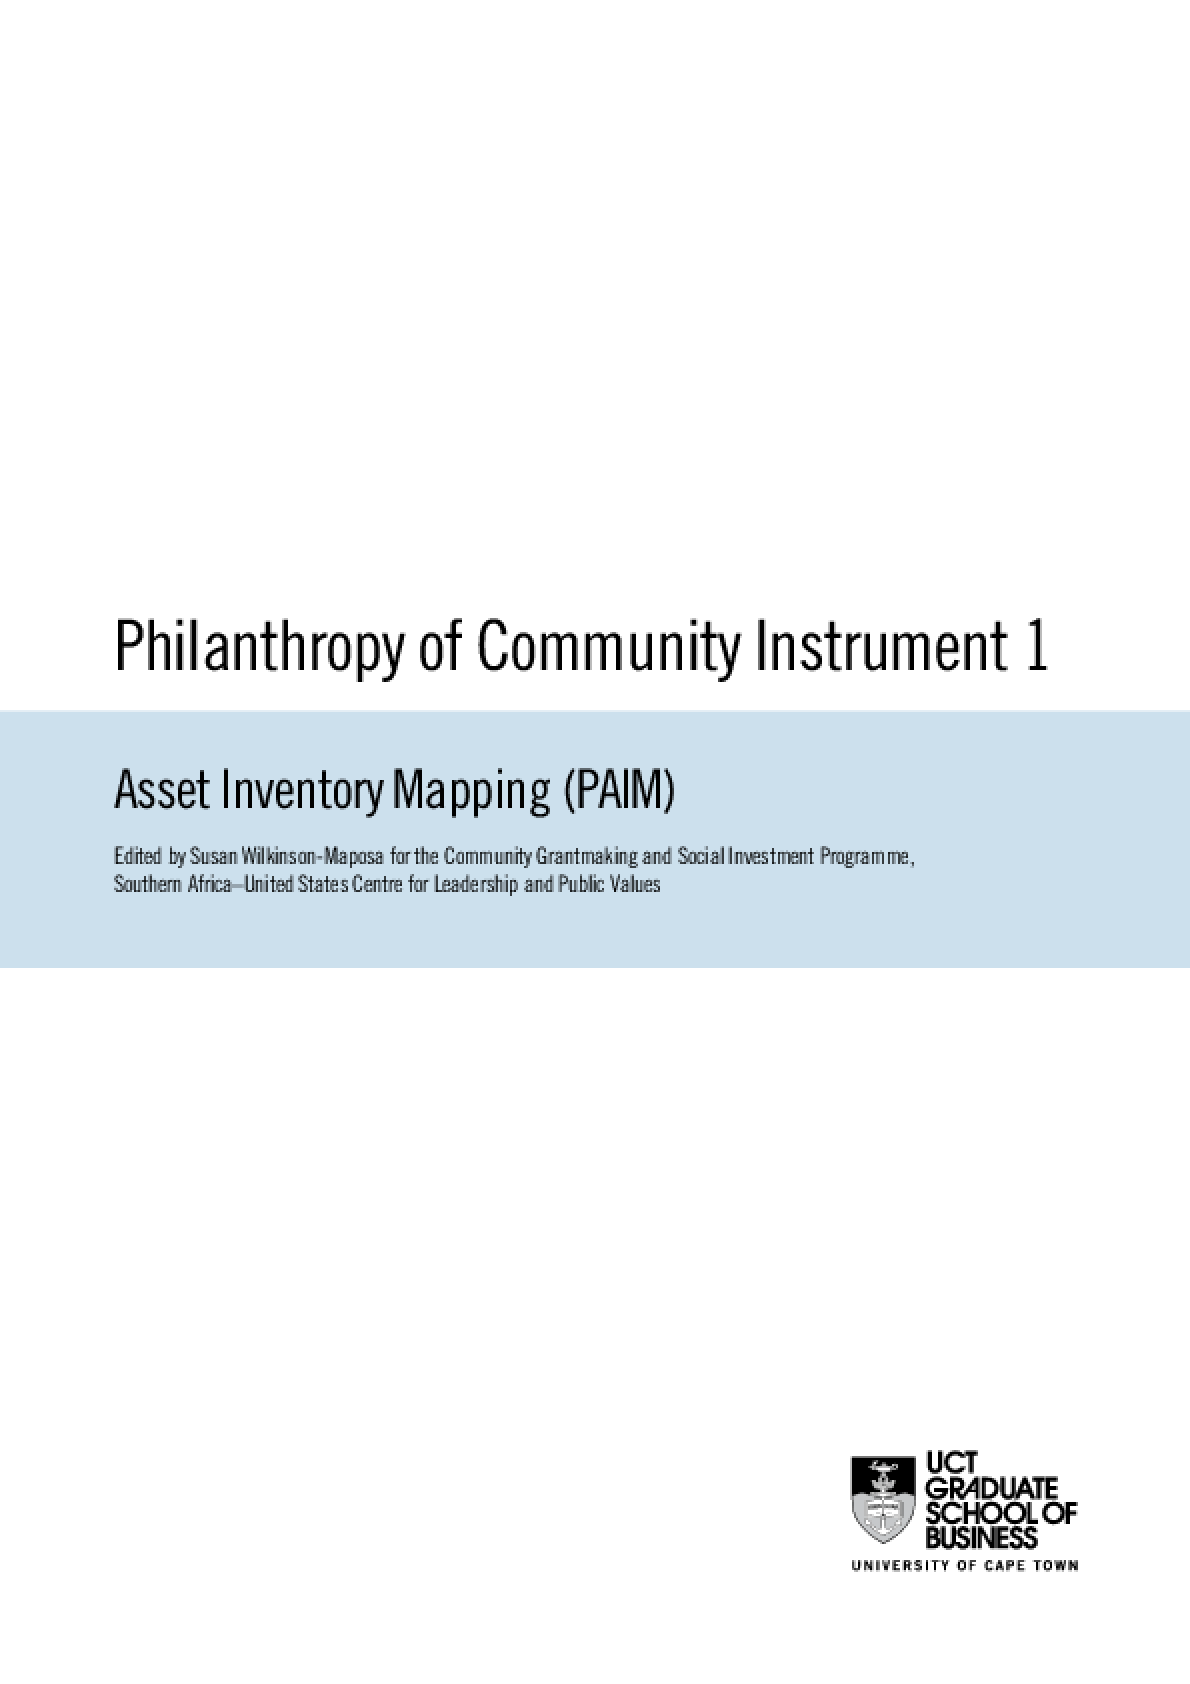 Philanthropy of Community Instrument 1: Asset Inventory Mapping (PAIM)